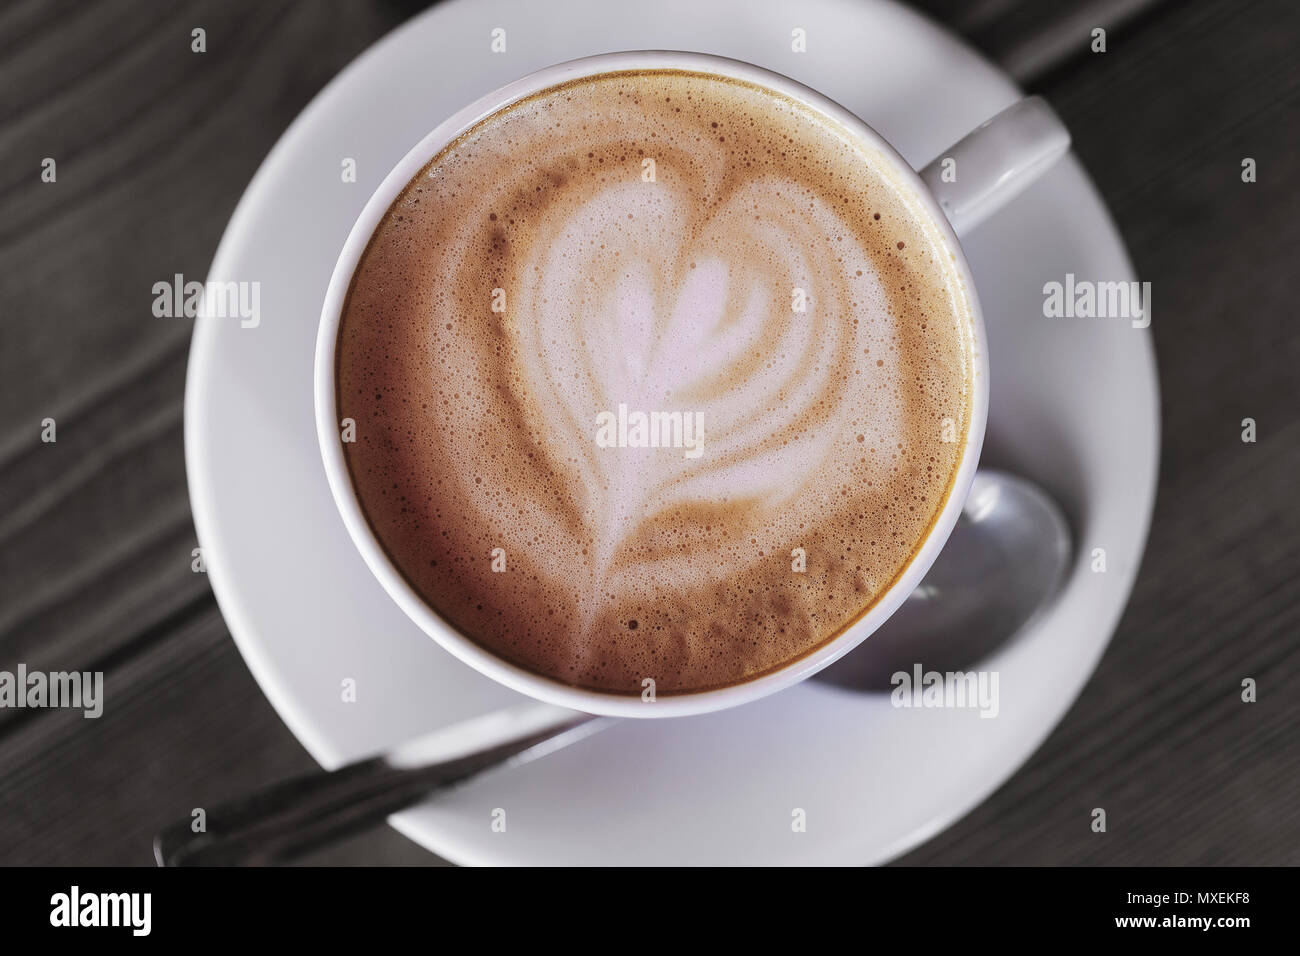 Cup of hot cappuccino coffee on a wooden table, top view - Stock Image